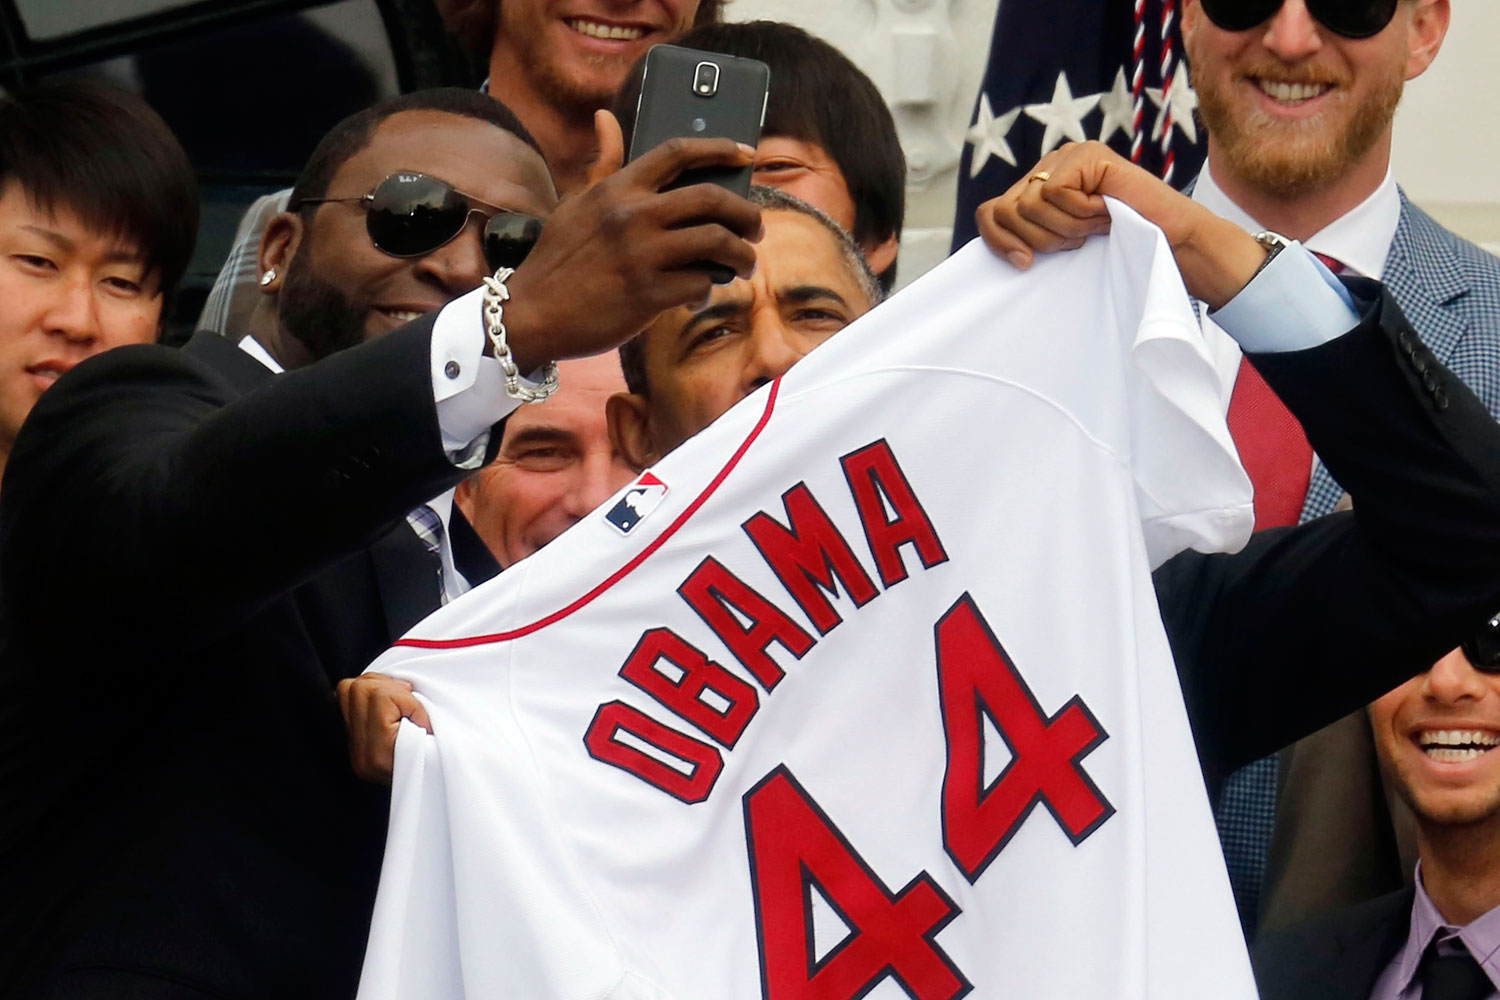 U.S. President Barack Obama poses with star player David Ortiz for a  selfie  as he welcomes the 2013 World Series Champion Boston Red Sox to the South Lawn of the White House in Washington, April 1, 2014.